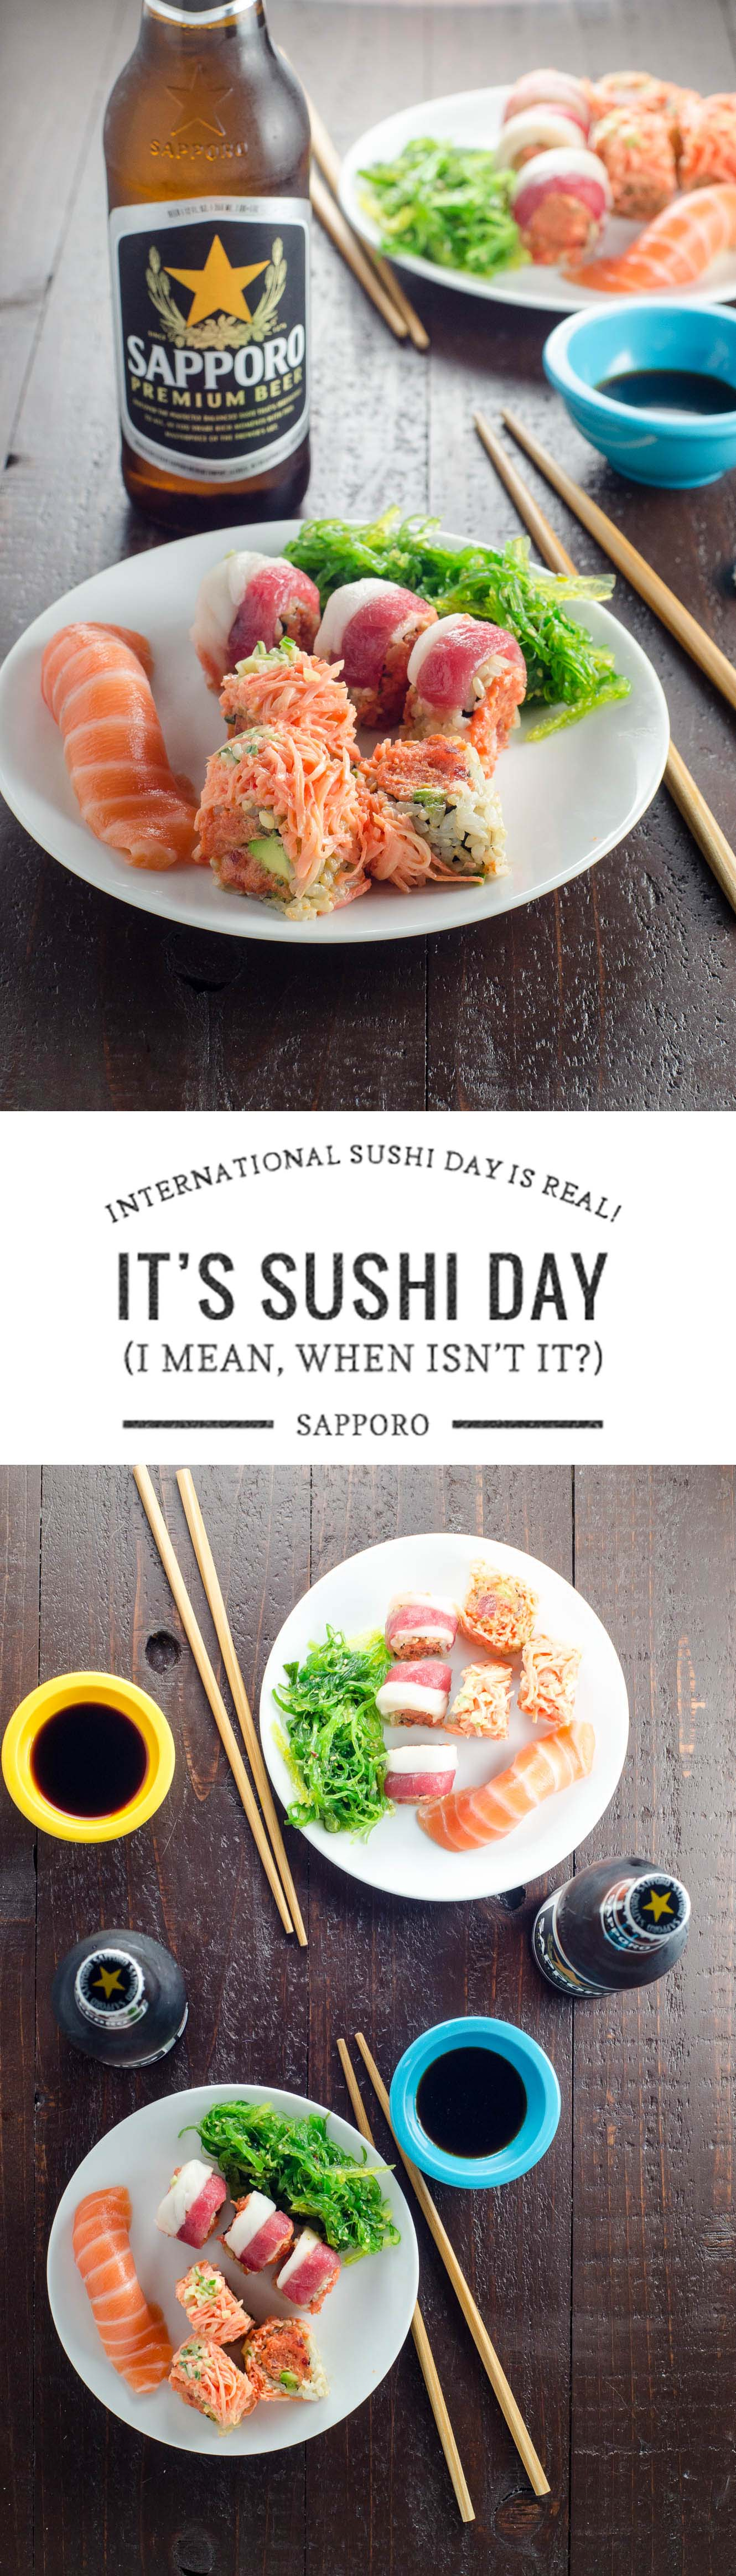 You guys, International Sushi Day is REAL. I'll be celebrating with Sapporo. #sponsored